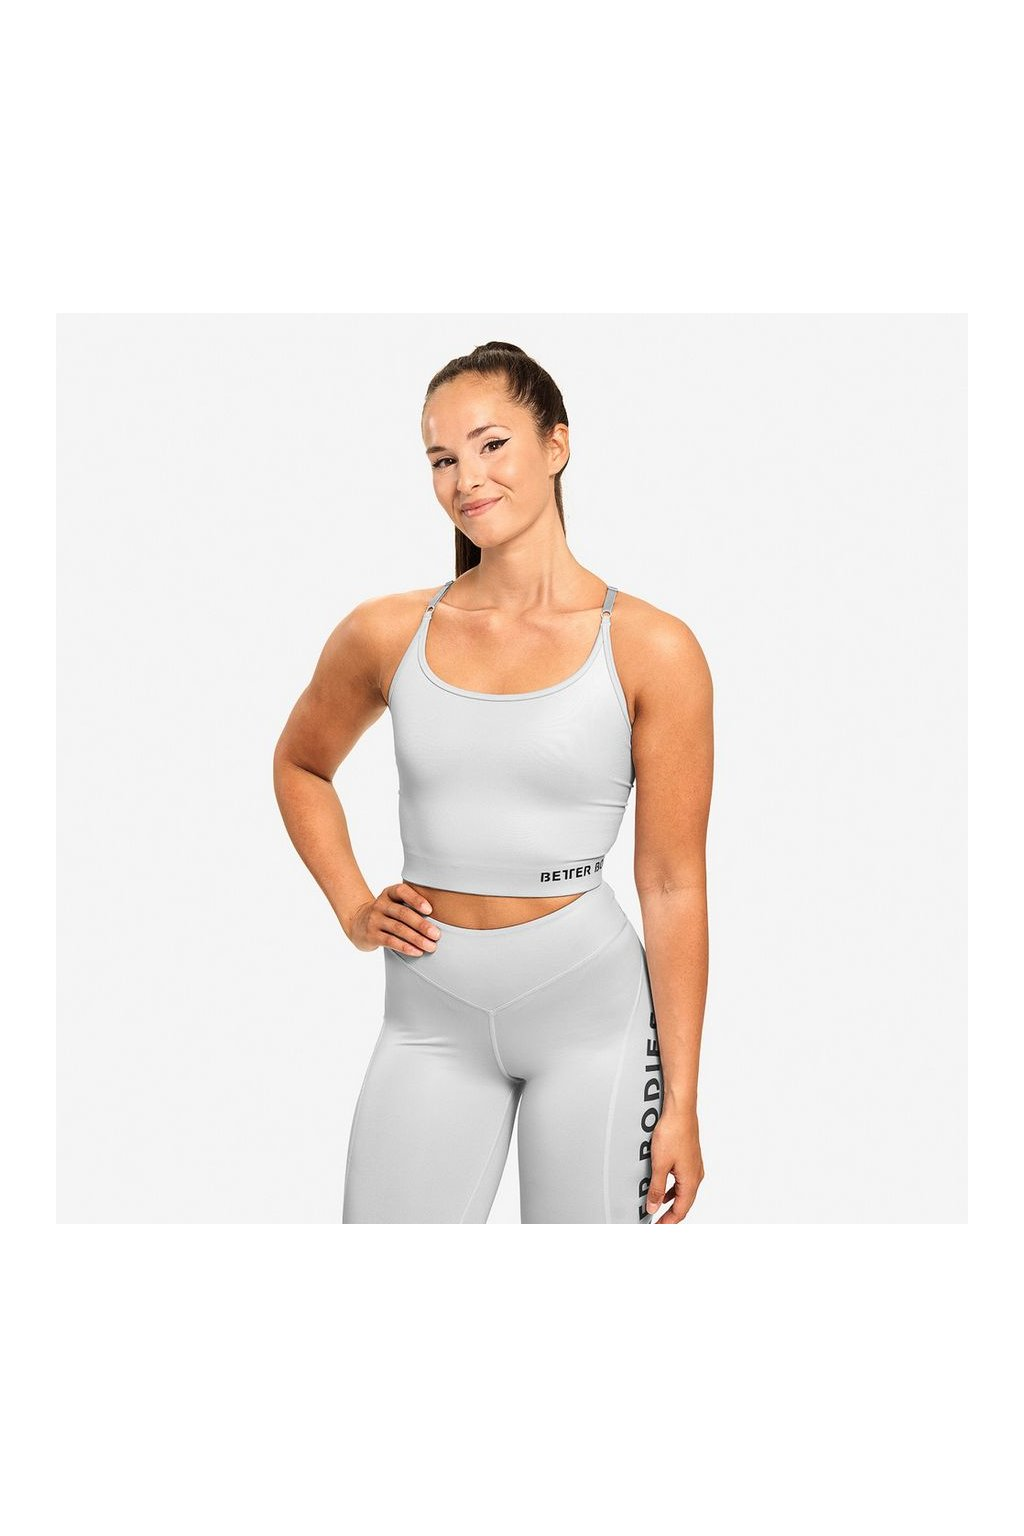 Better BodiesBetter Bodies Top Vesey Strap Frost Grey